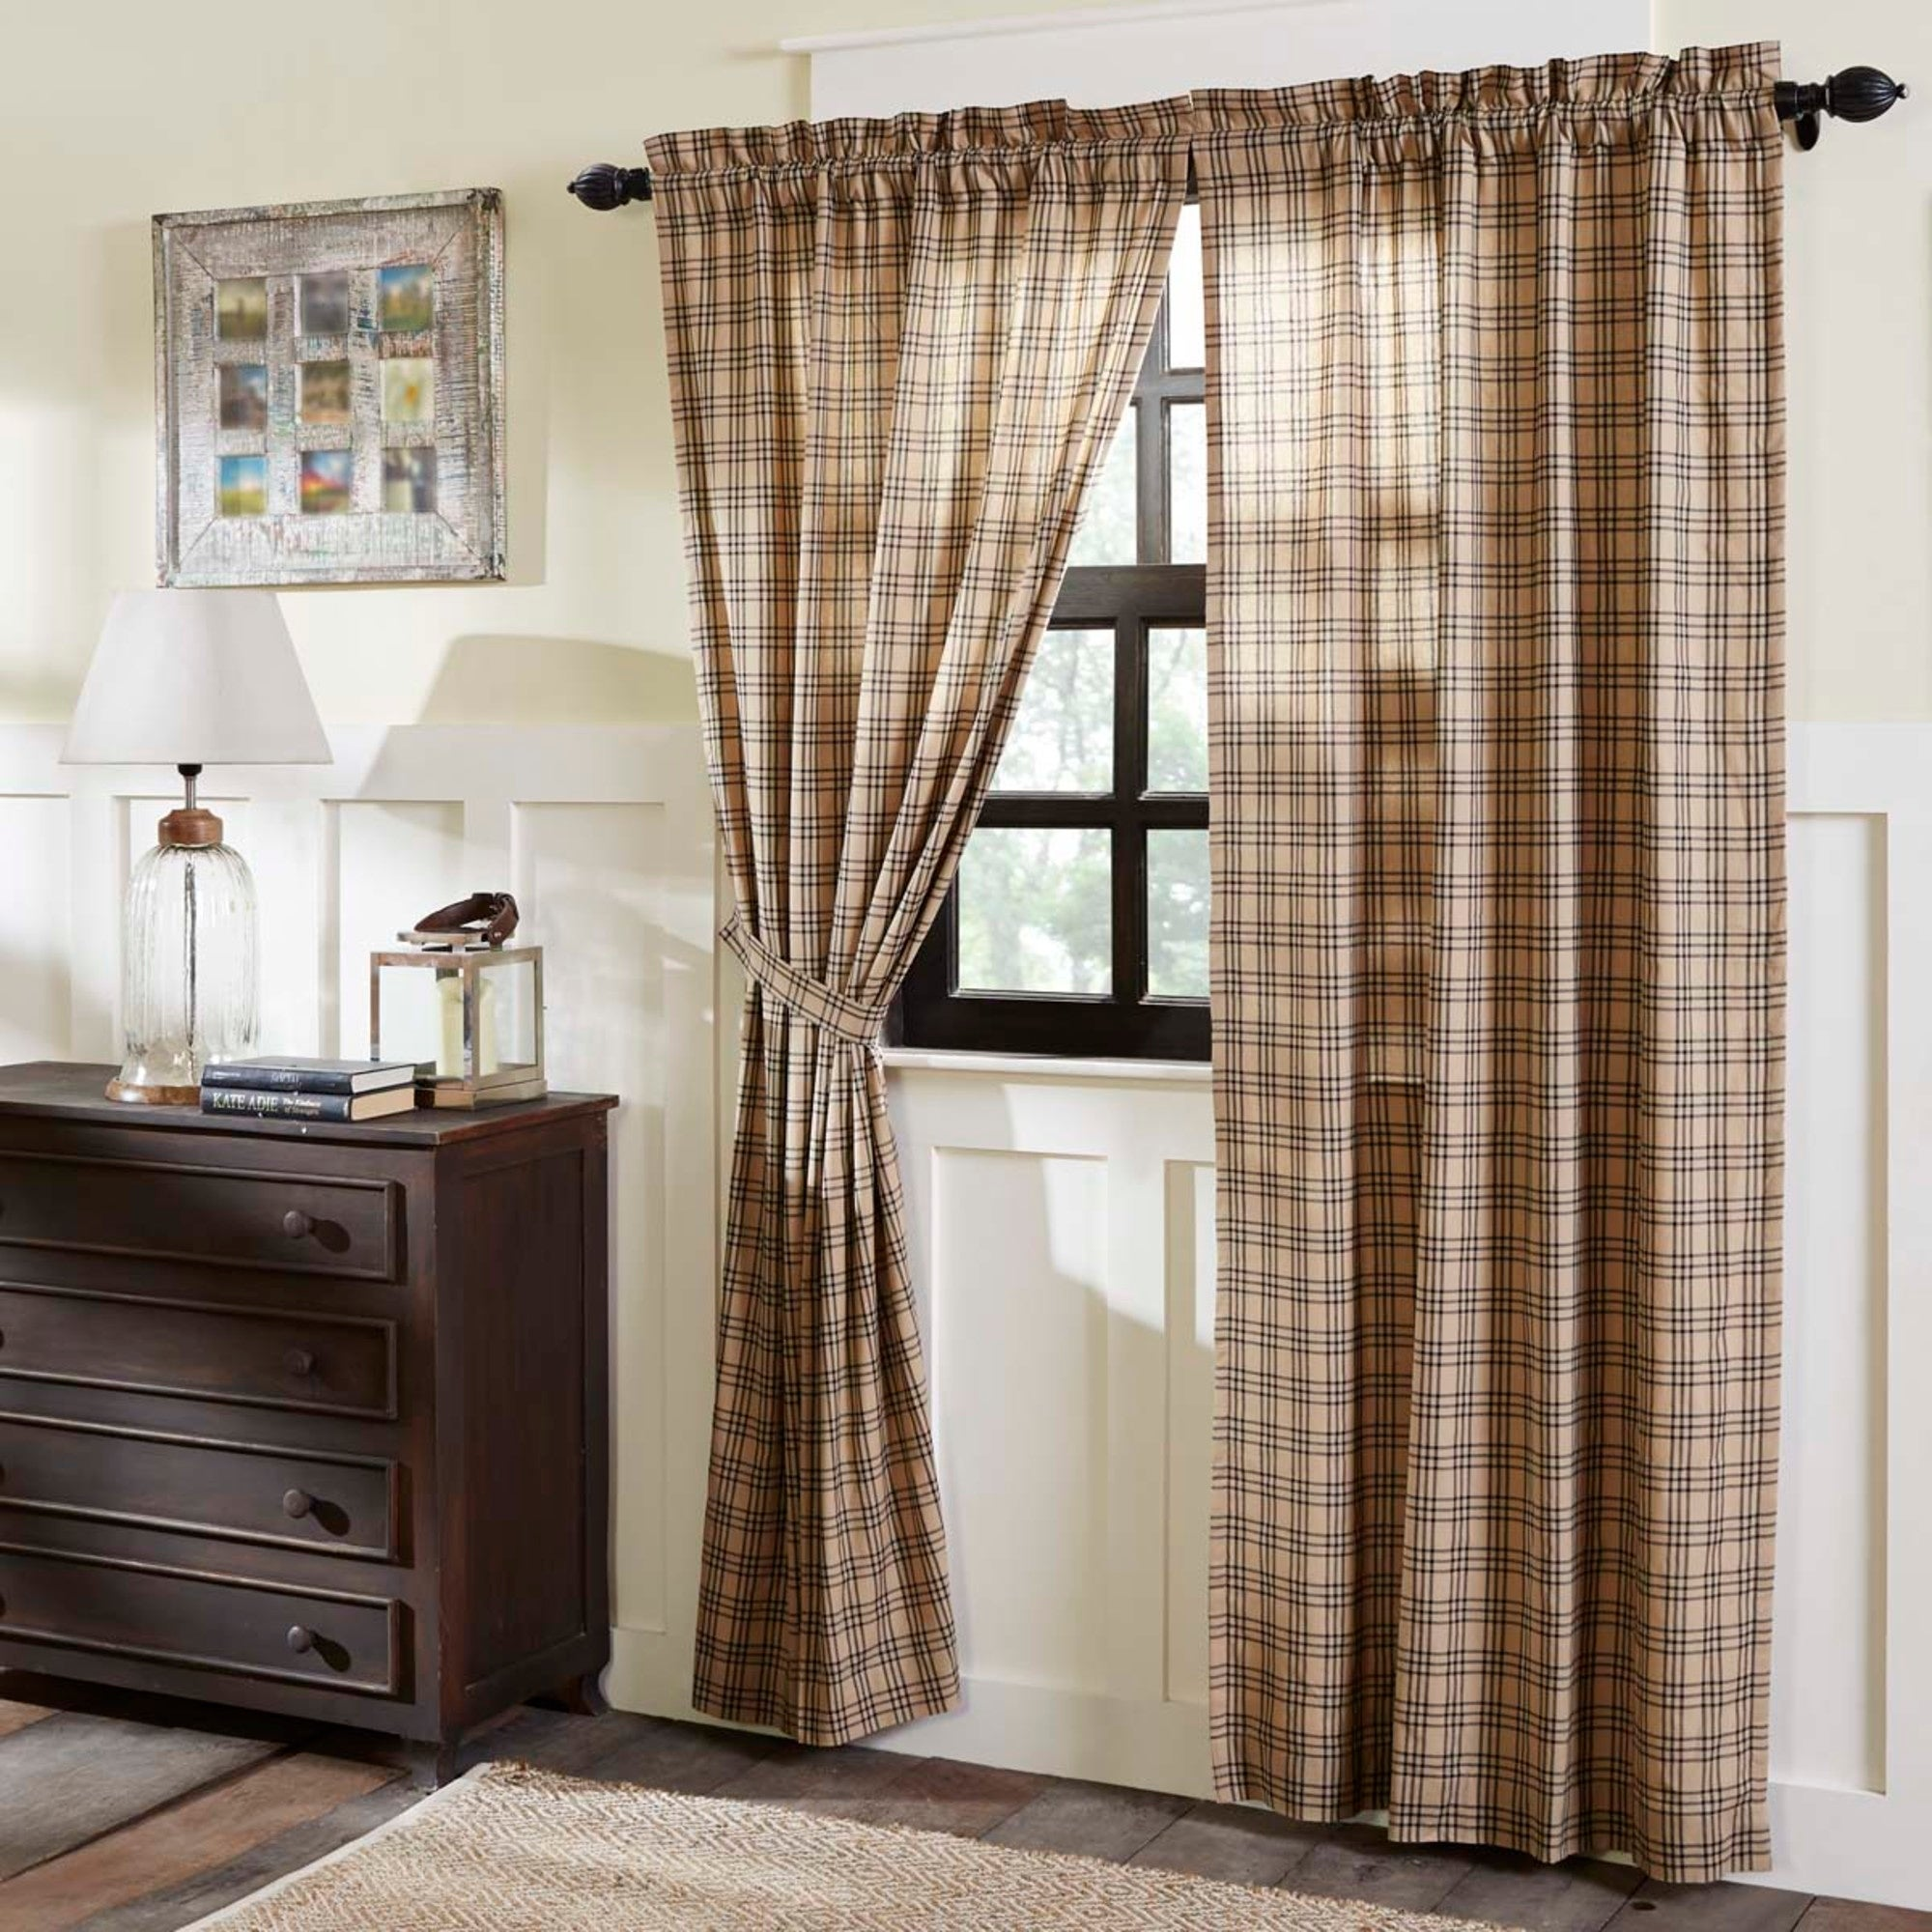 Curtains Blinds Accessories Sawyer Mill Country Curtain Drapes Prairie Panel Set 3 Colors Vhc Farmhouse 84 L Home Furniture Diy Mhg Co Ke